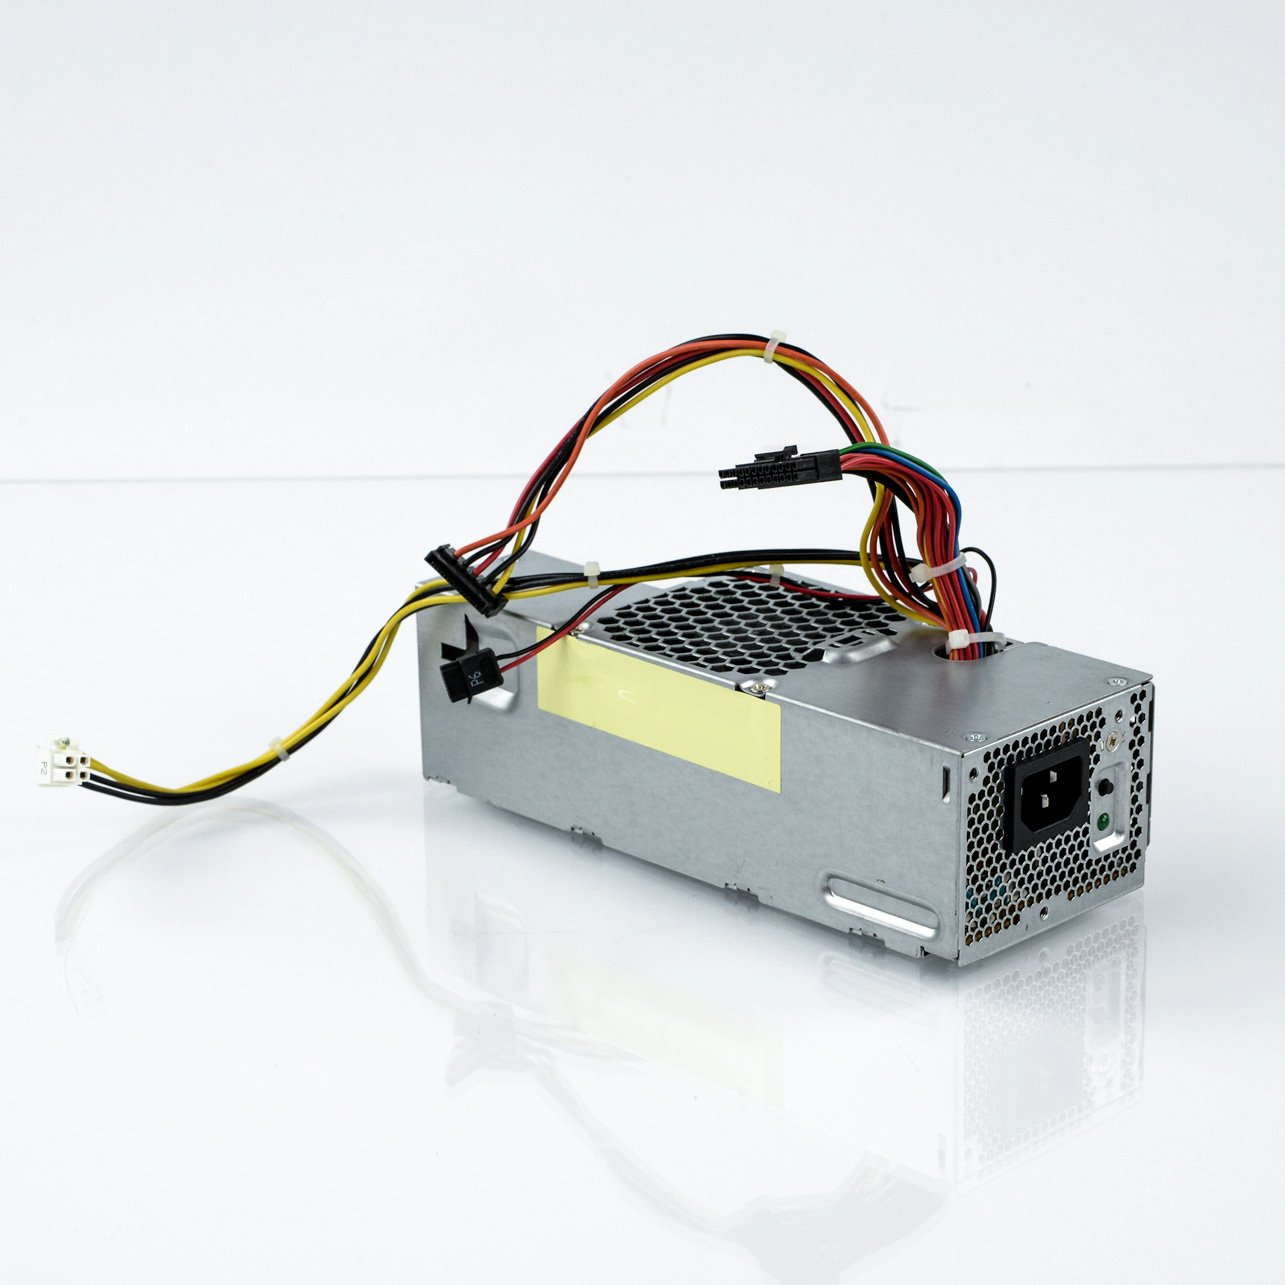 FR610, PW116, RM112, 67T67 R224M, WU136 DELL 235w Power Supply For Optiplex 760, 780 and 960 Small Form Factor (SFF) Systems Model Numbers: F235E-00, L235P-01, H235P-00, H235E-00